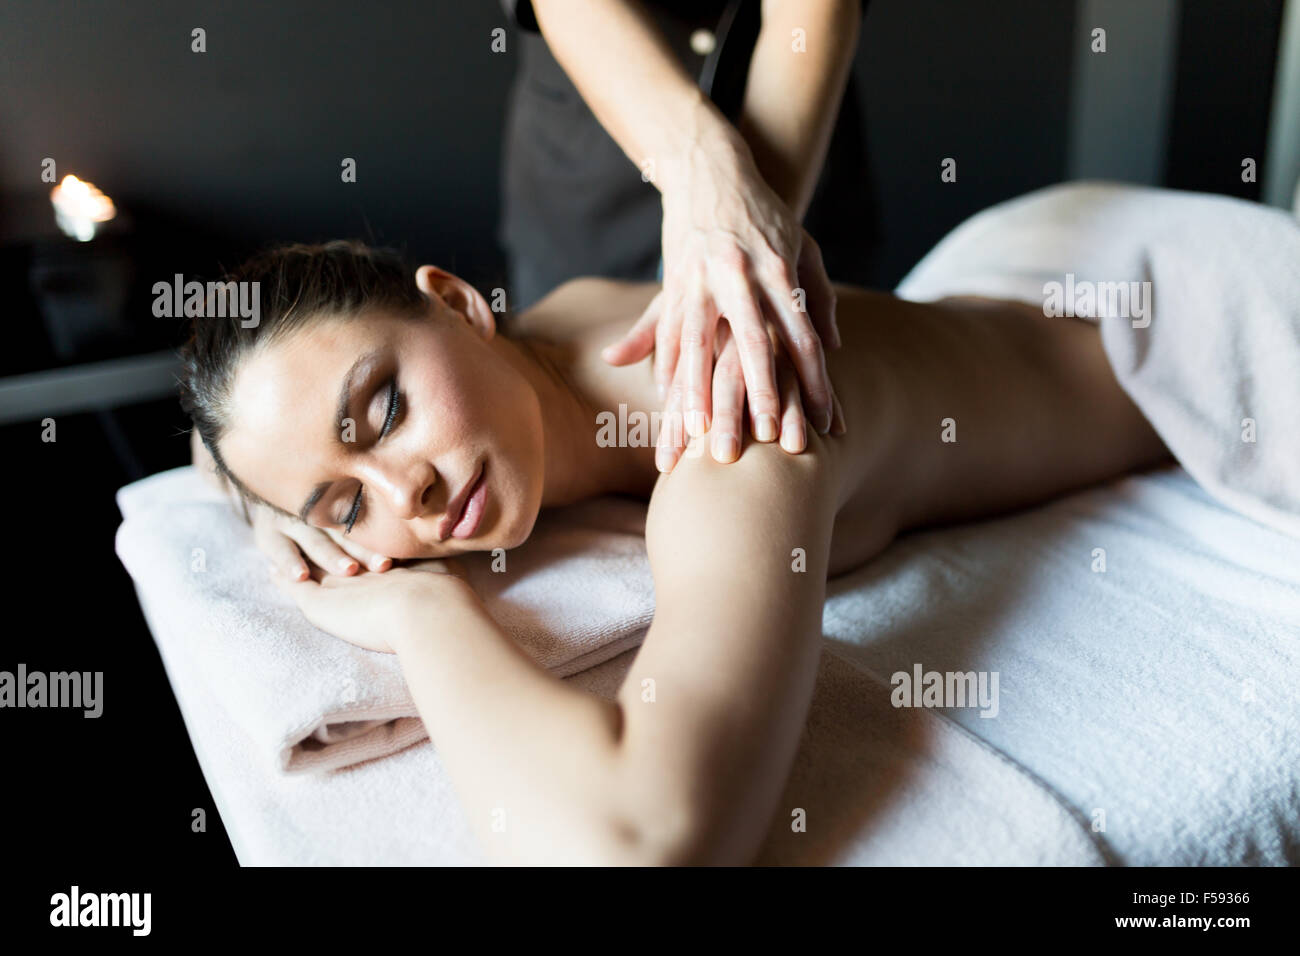 Beautiful, young and healty woman having her shoulder and body massaged by a professional masseur at a spa center - Stock Image